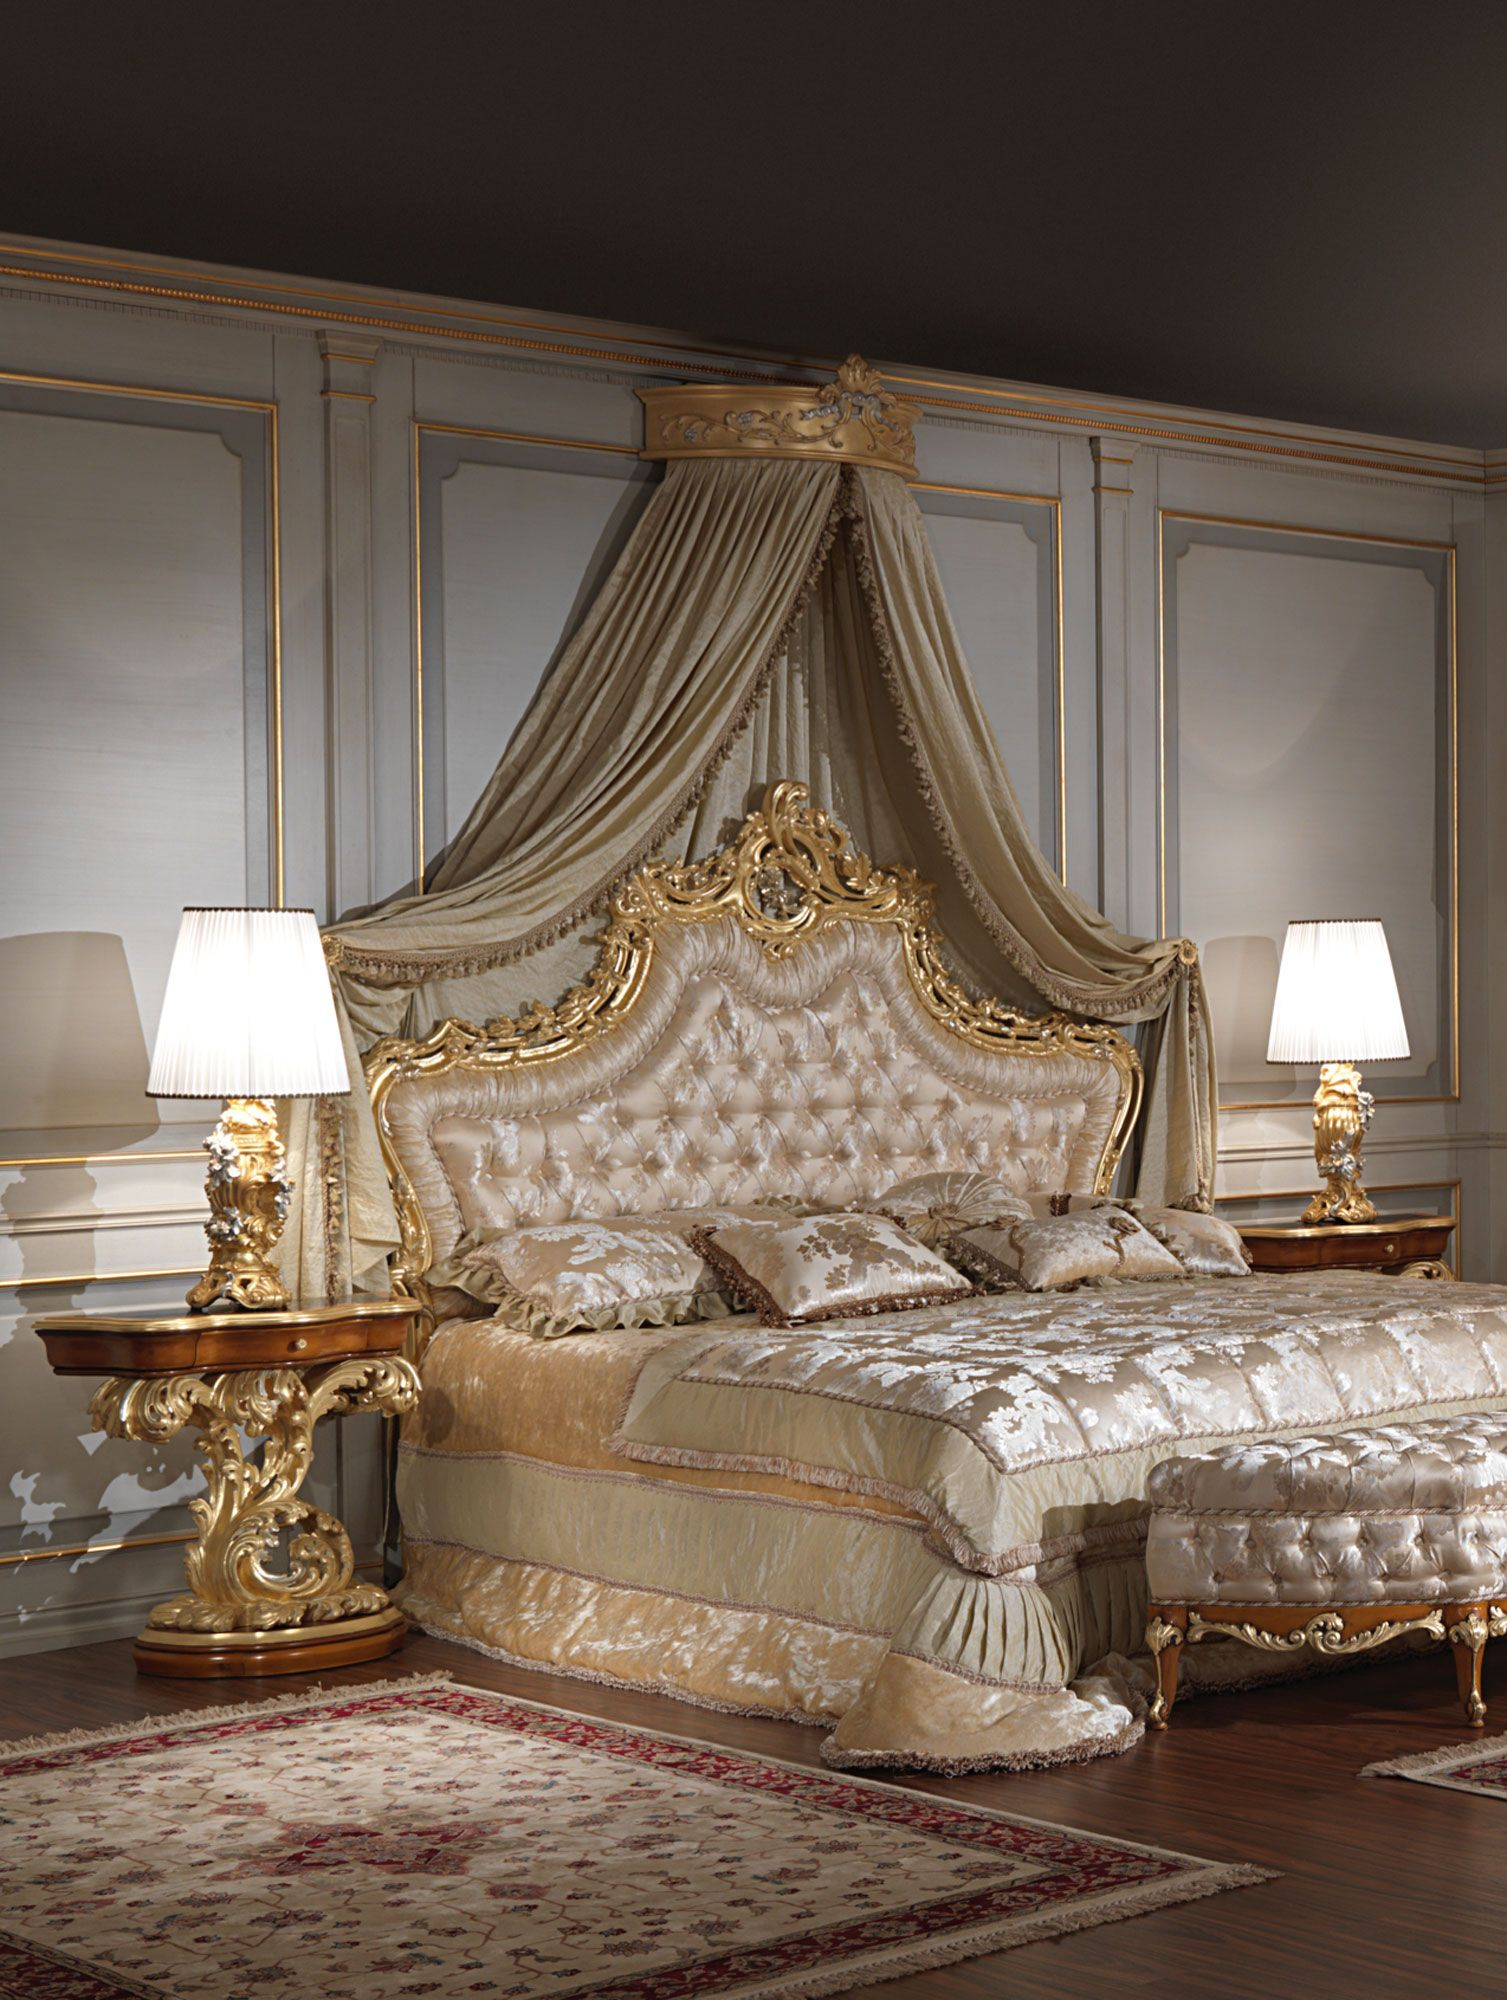 Luxury Classic Bedroom Roman Baroque Style Of The Seventeenth Century Baroque Toilette And Night T Classic Bedroom Luxurious Bedrooms Luxury Bedroom Furniture